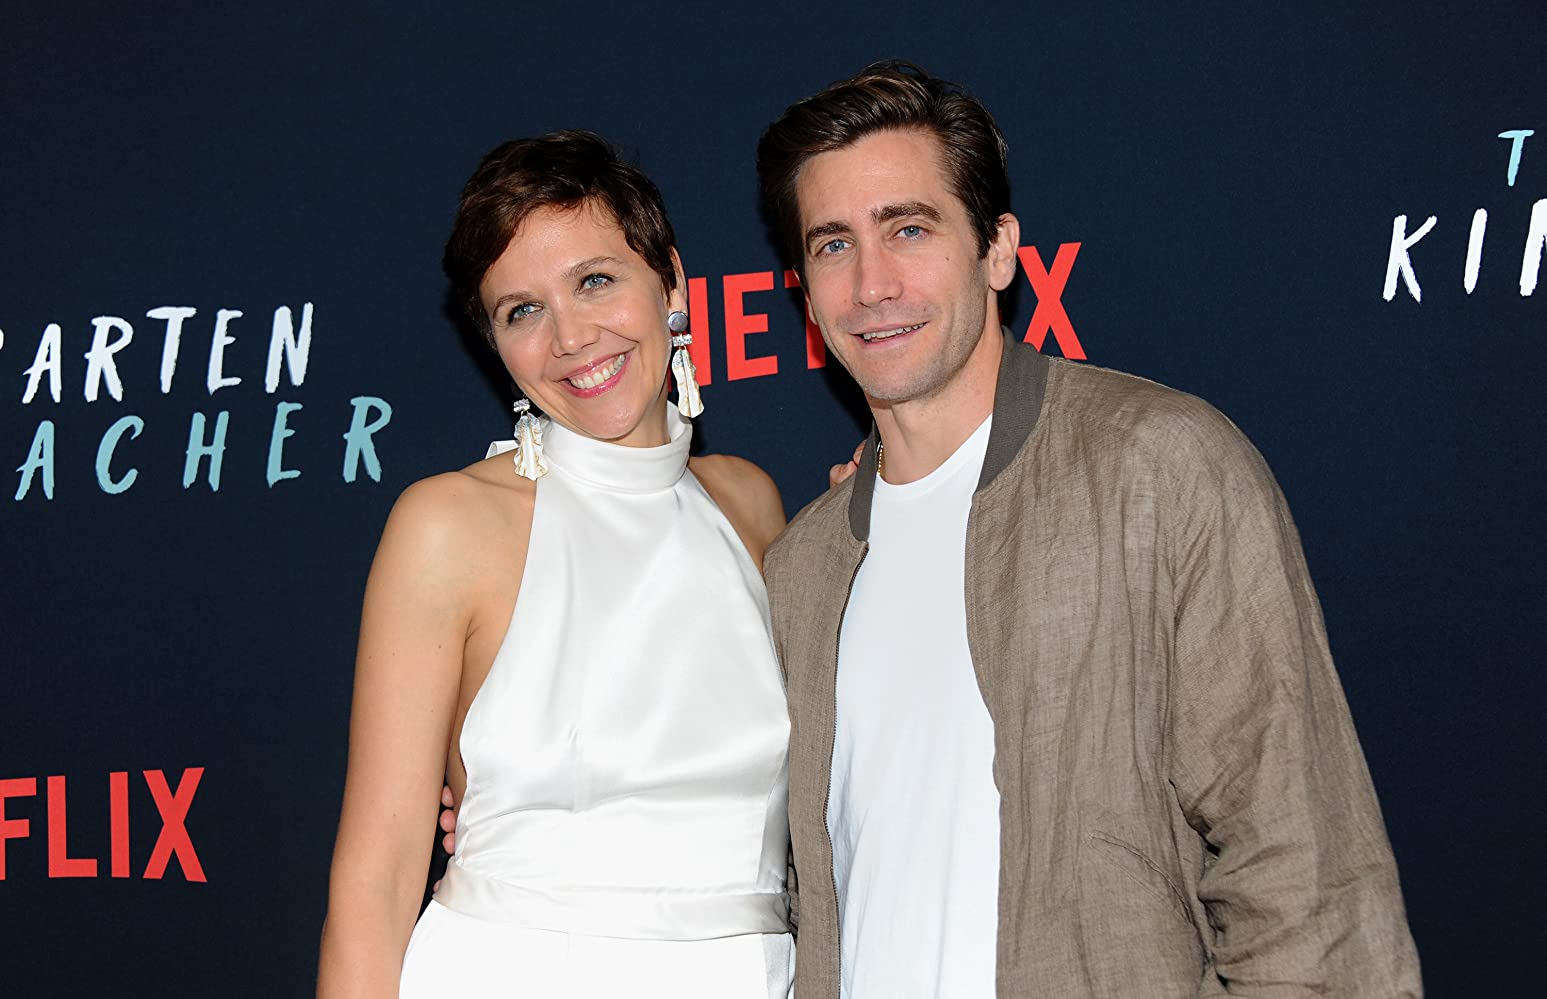 Jake Gyllenhaal and Maggie Gyllenhaal